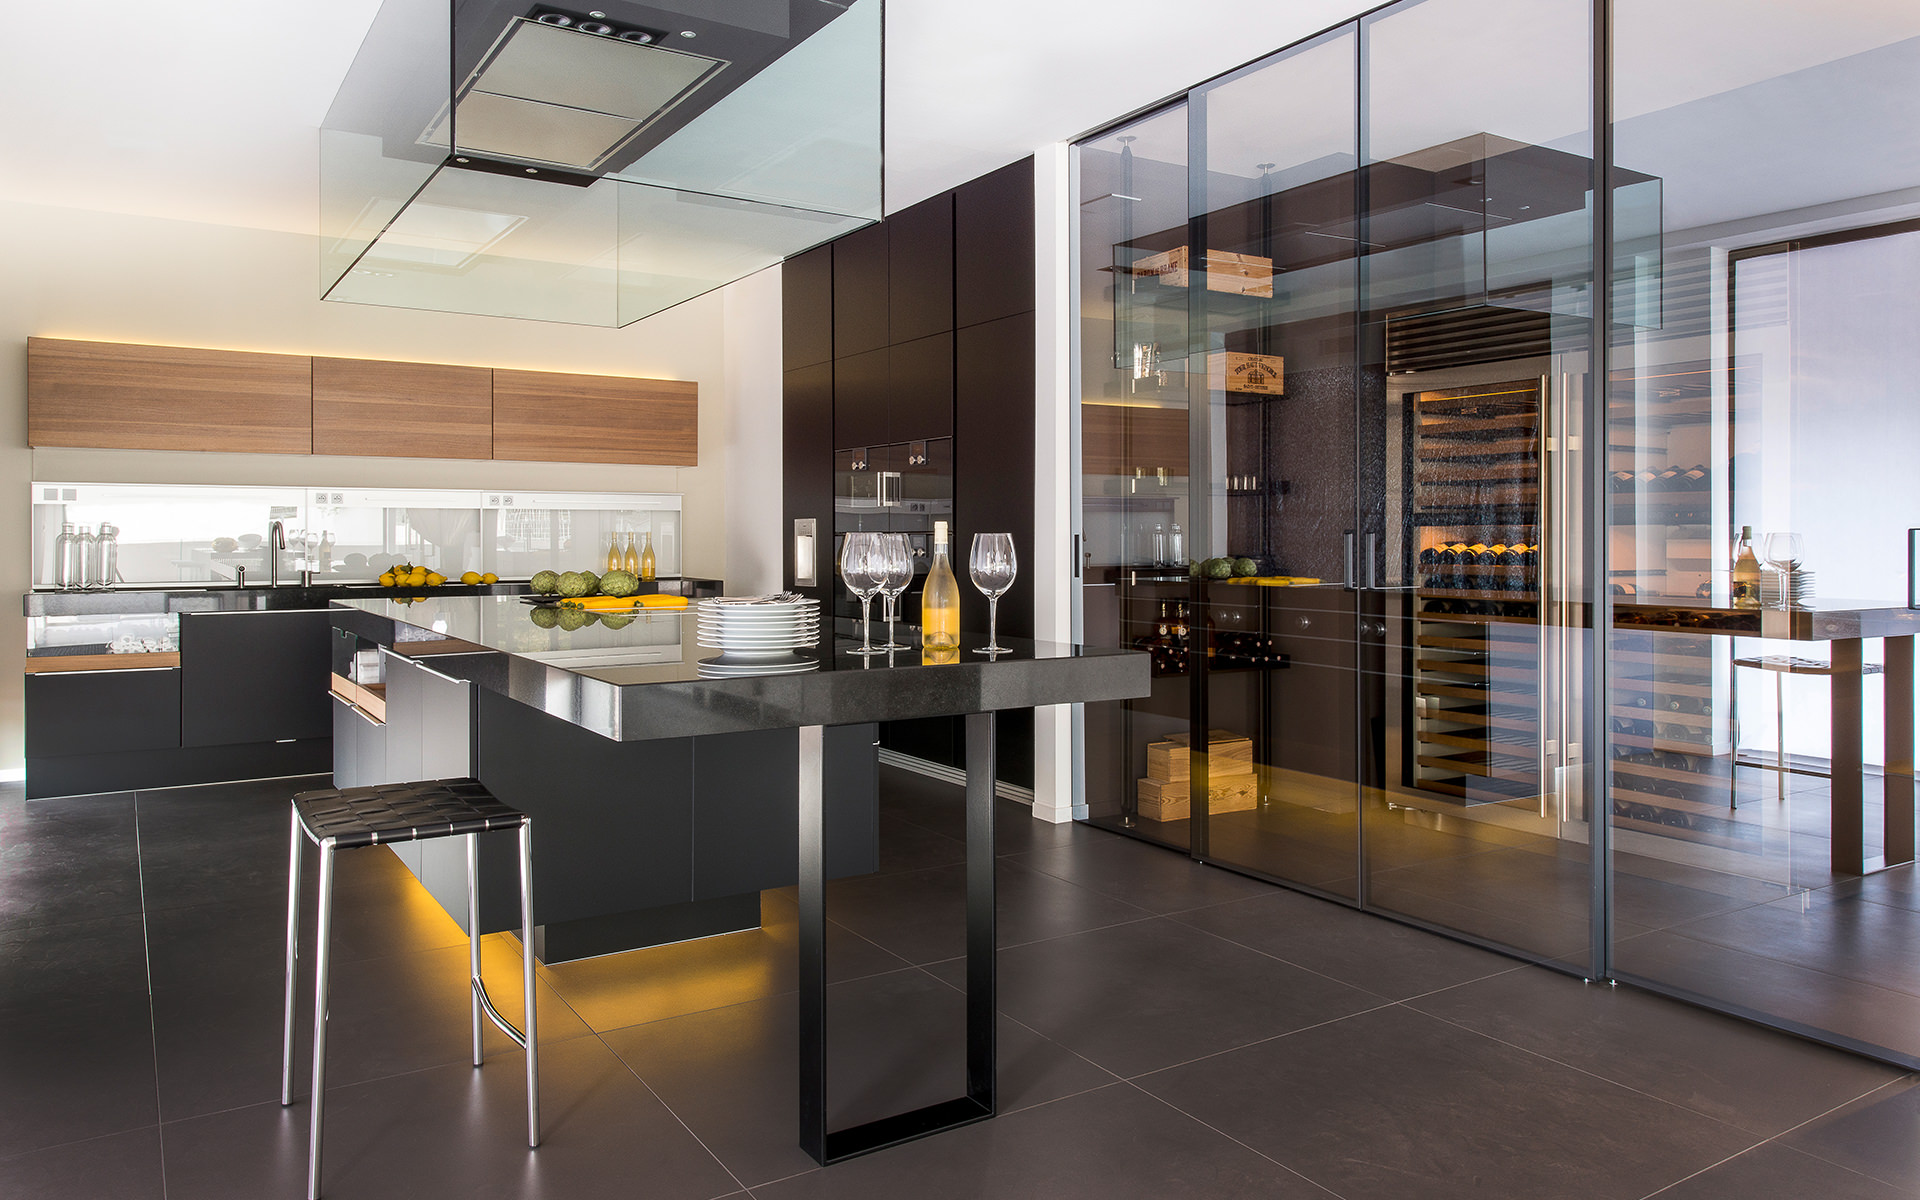 Showroom Cuisine Of Showroom Cuisine Design Minimaliste Allemand Et Italien